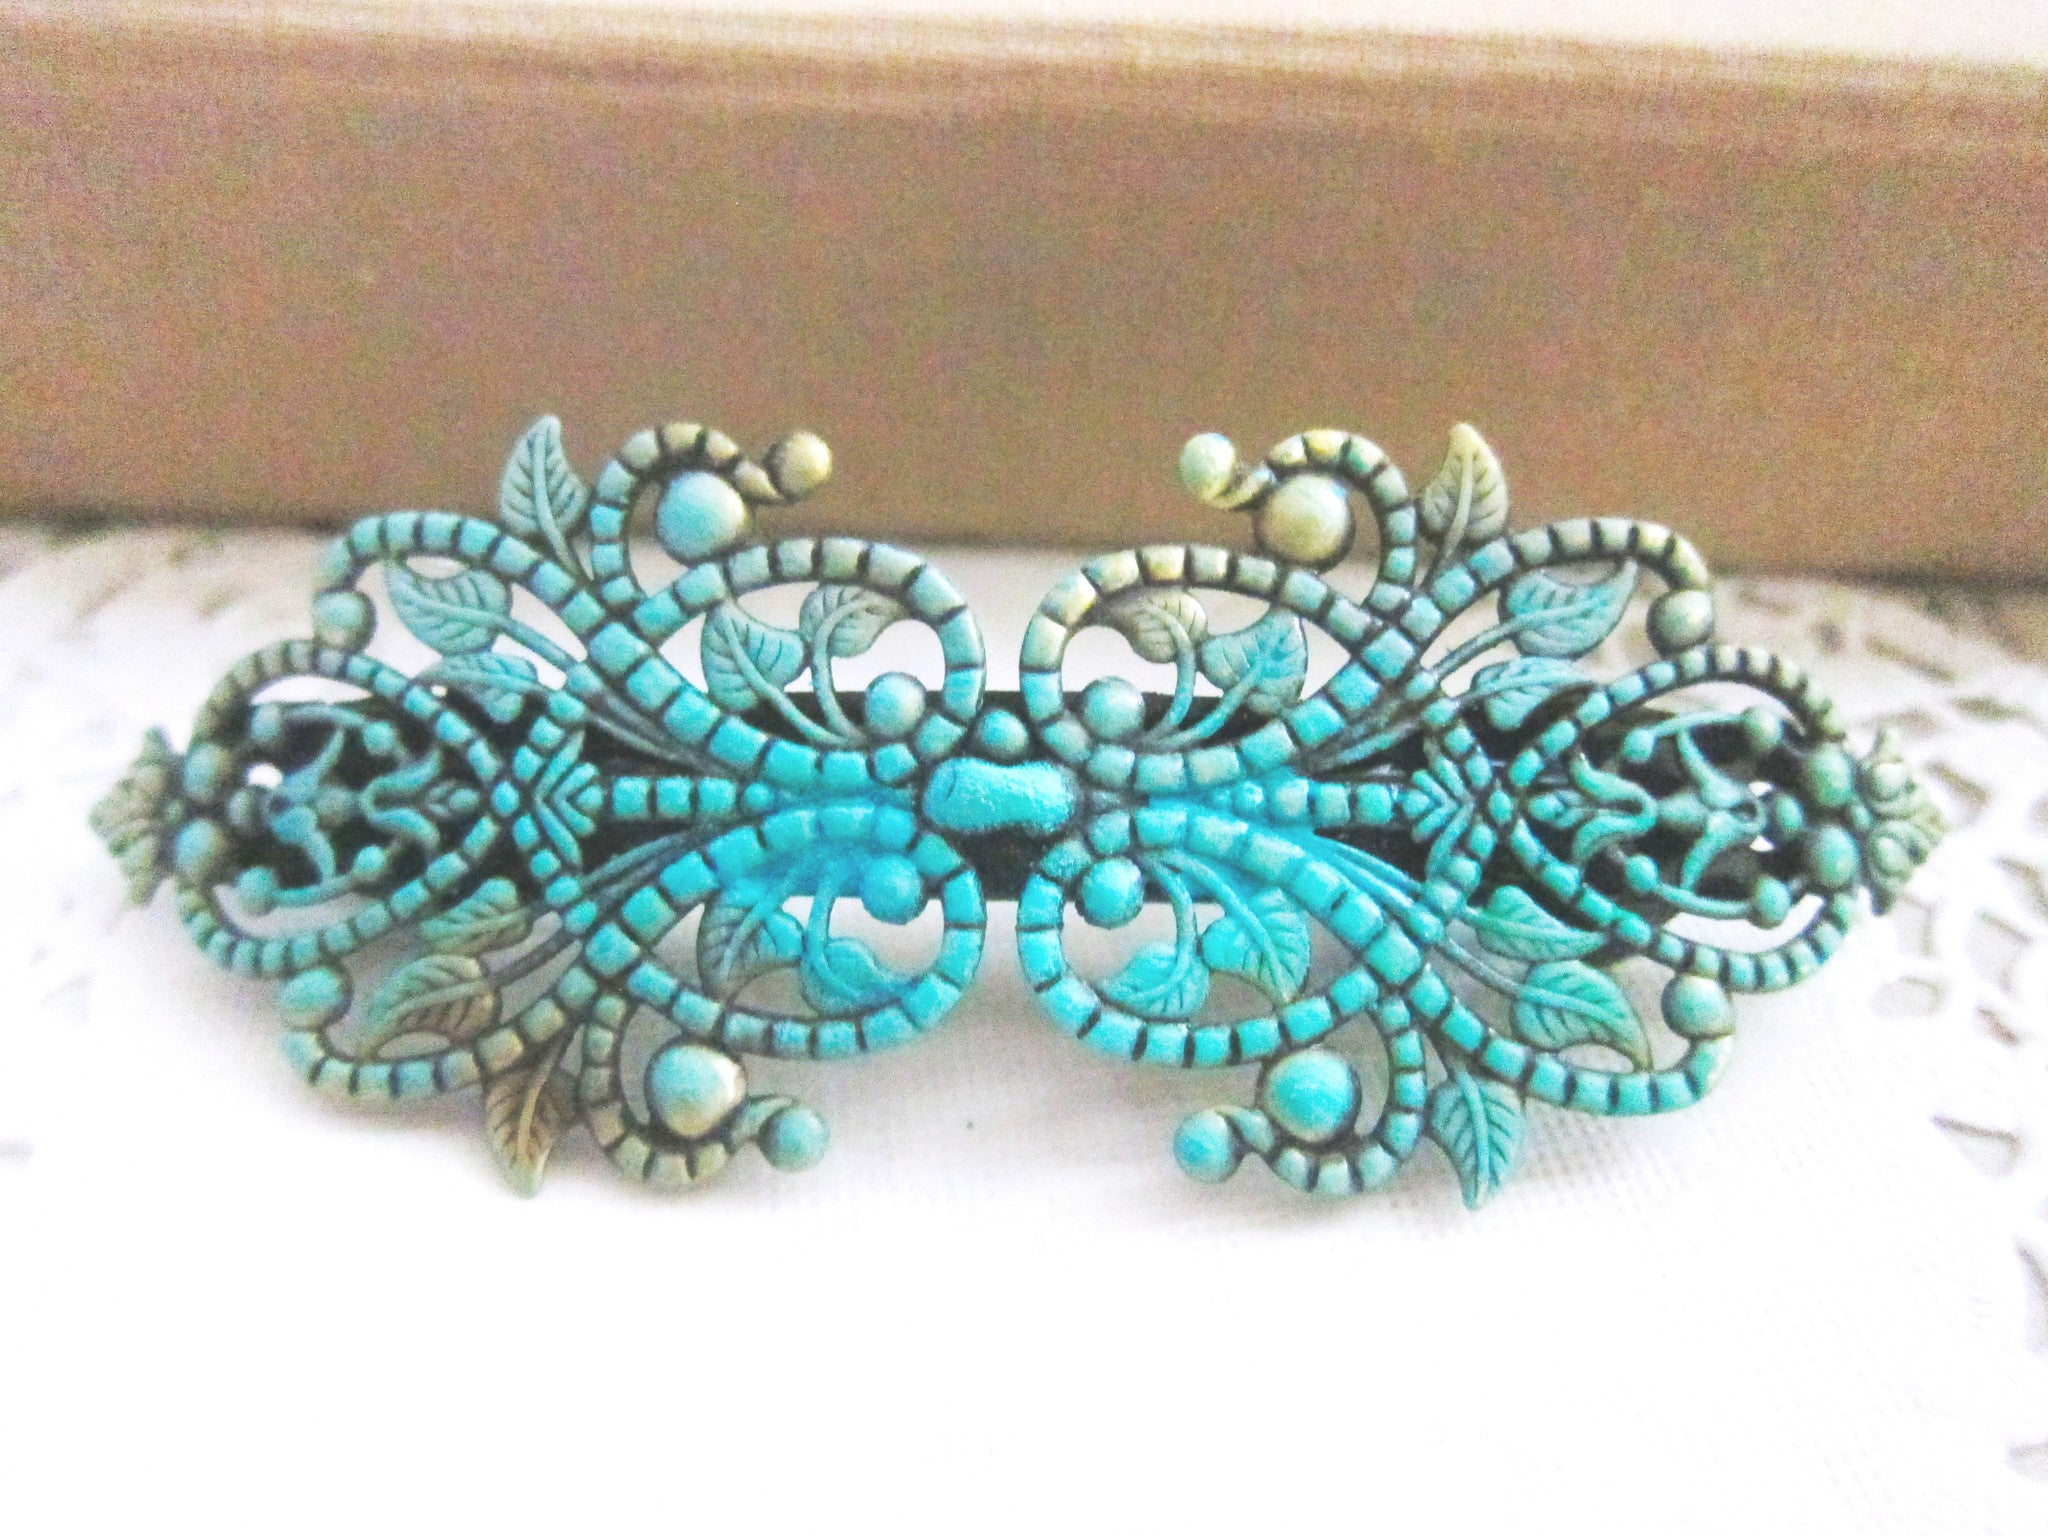 Hair Barrette Vintage Style Teal Turquoise Aqua Blue Rustic The Great Gatsby Victorian Spanish Style Hair Accessories Film Noir Girly Bohemian - Jewelsalem